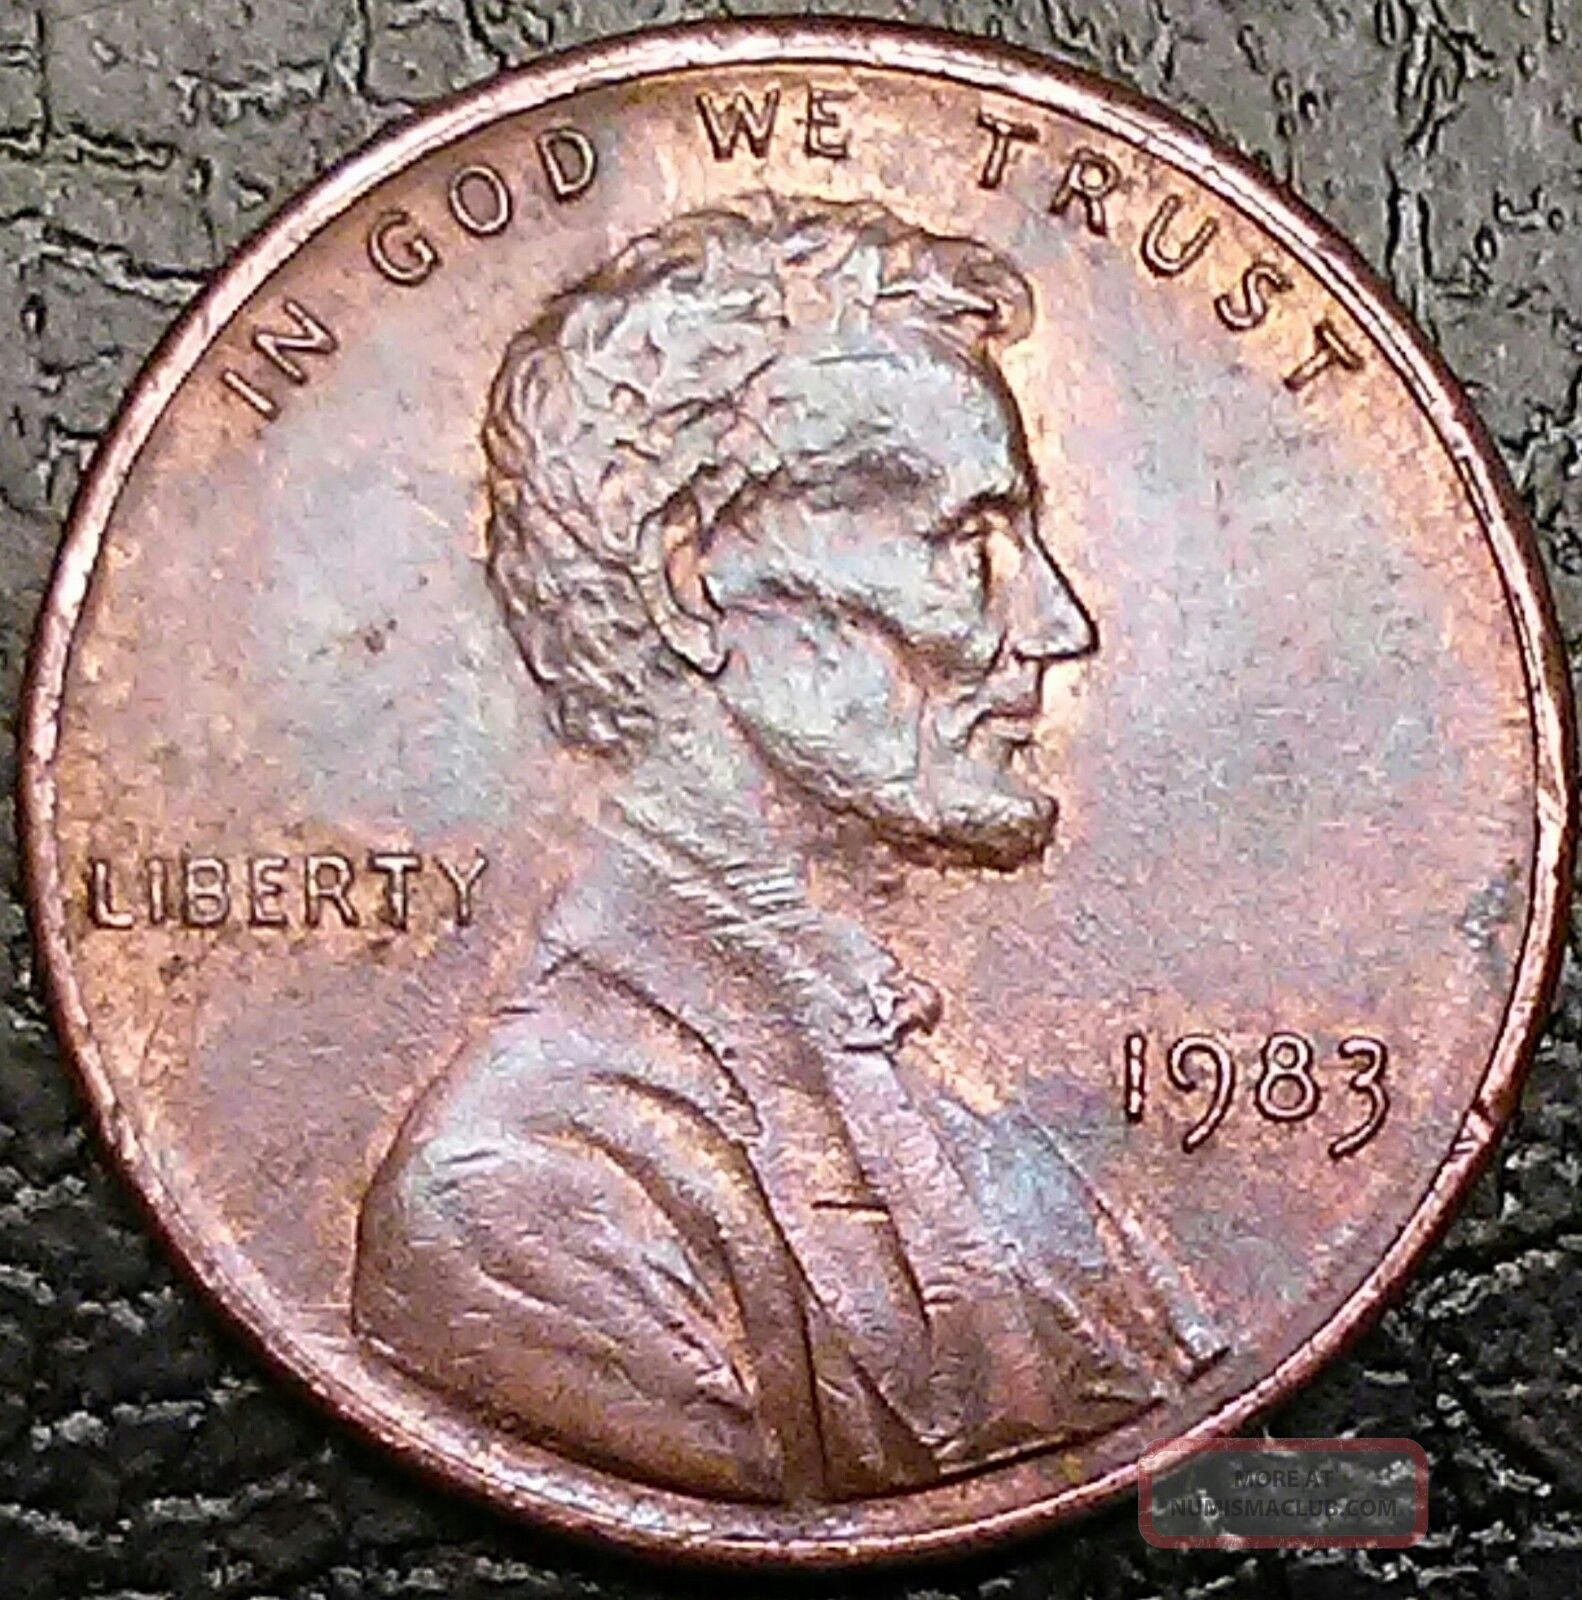 1983 1c Doubled Die Reverse Rd Lincoln Cent Lincoln Memorial (1959-2008) photo